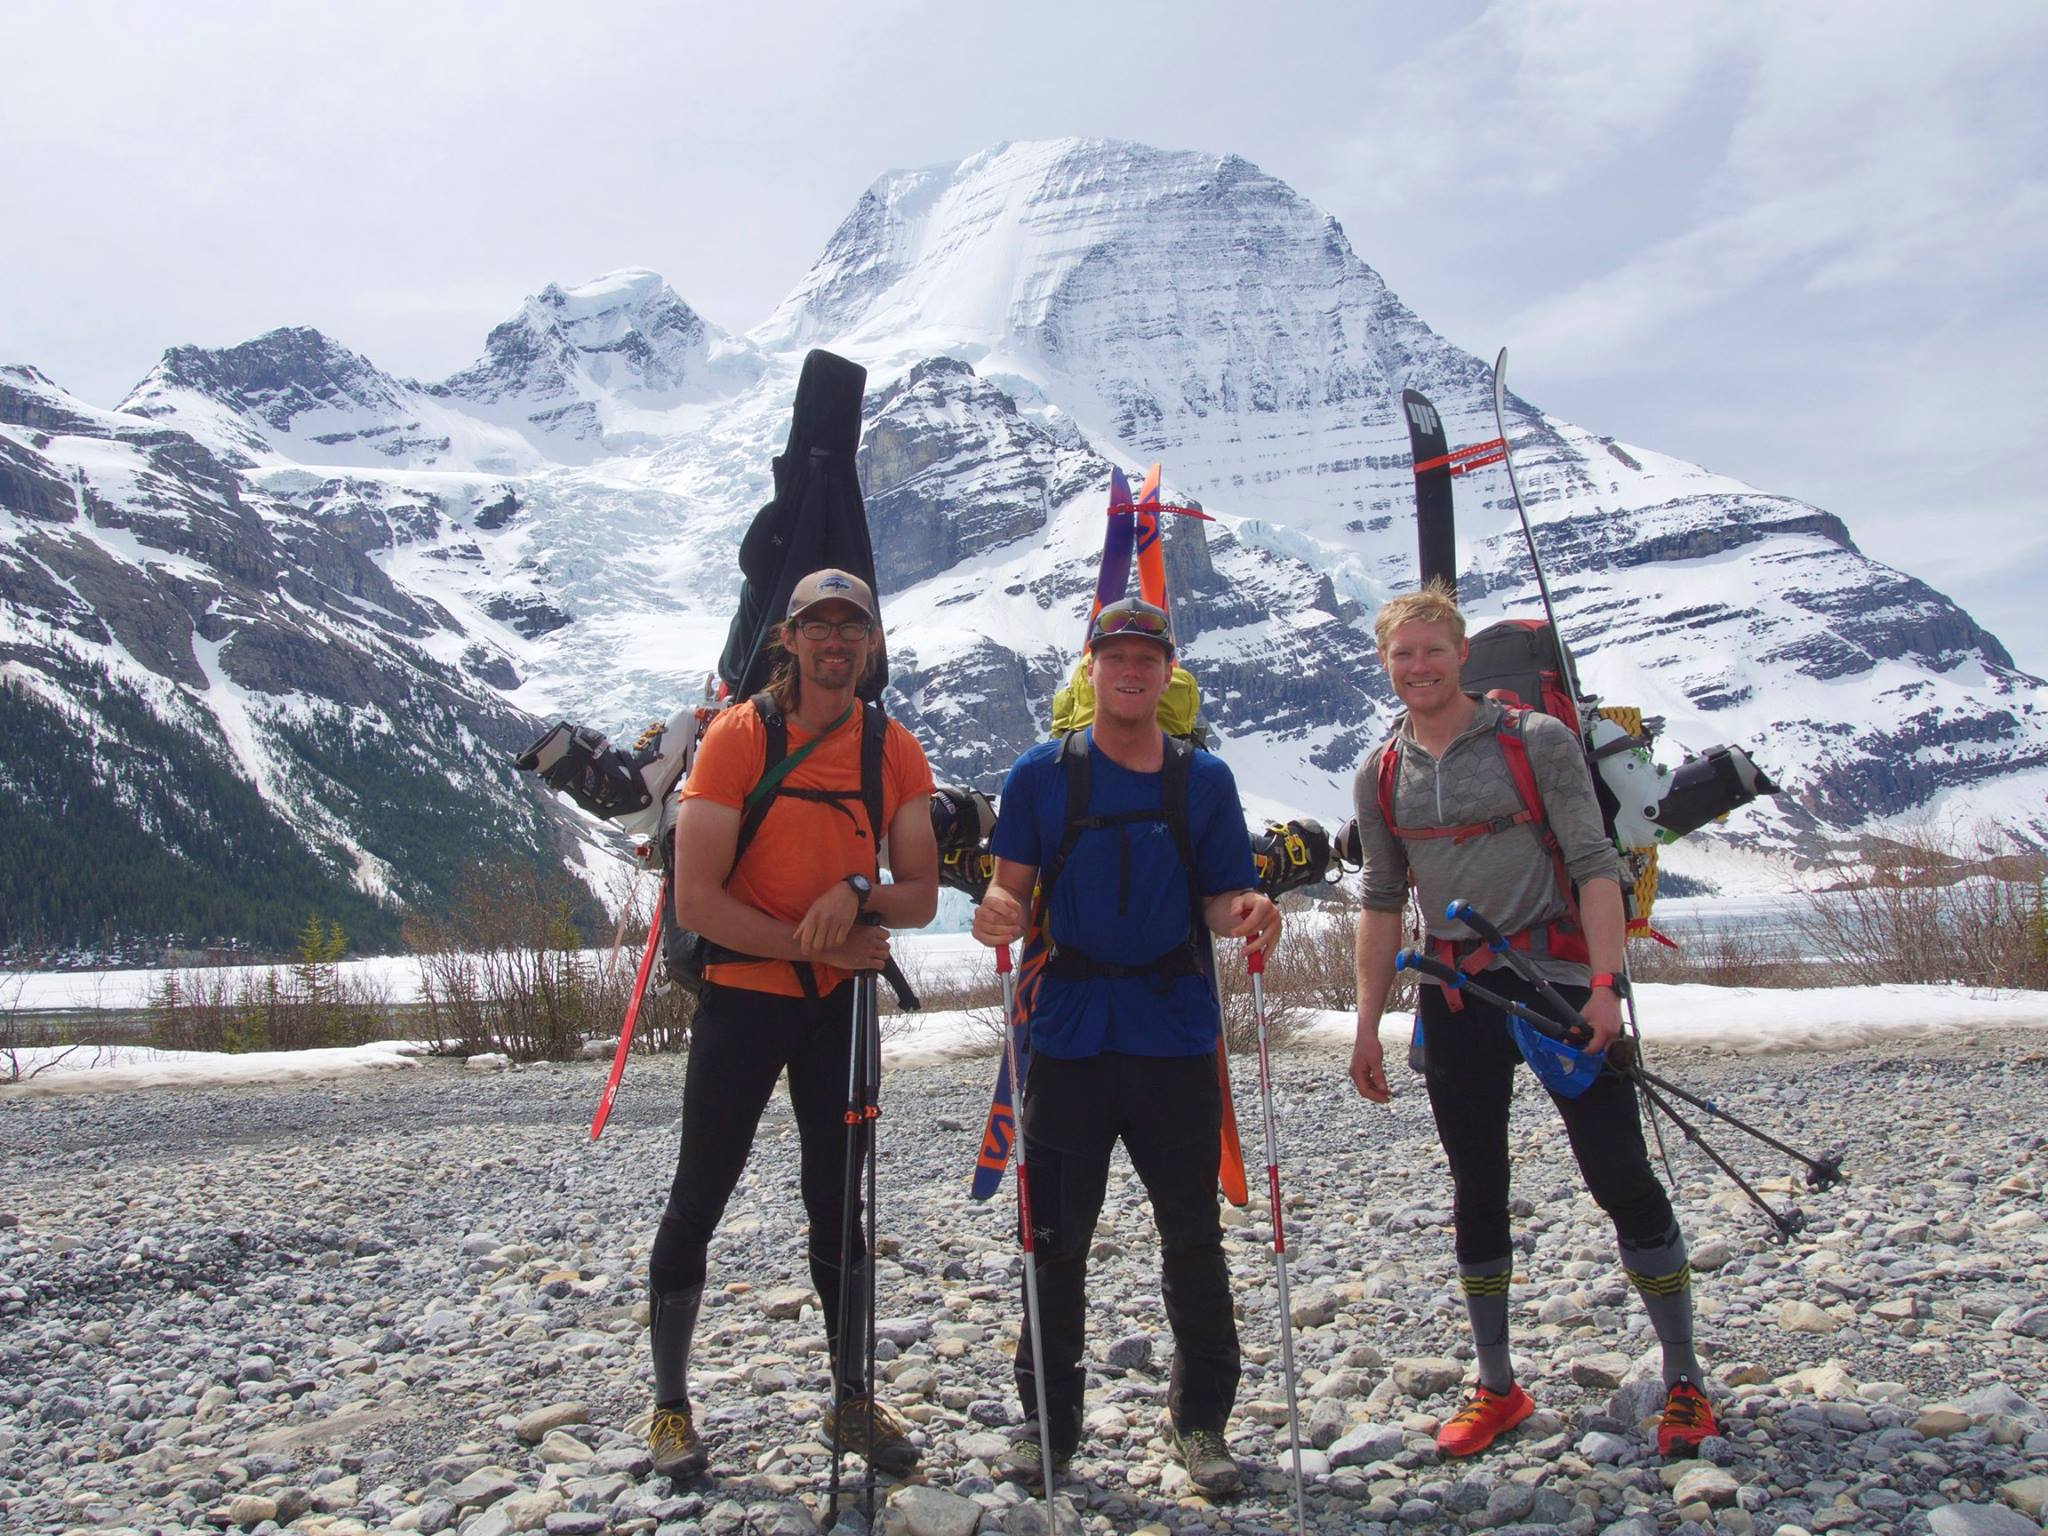 Dylan Chen, Kevin Rohn and Dylan Cunningham (left to right) on the way out of their mission to Mt. Robson.